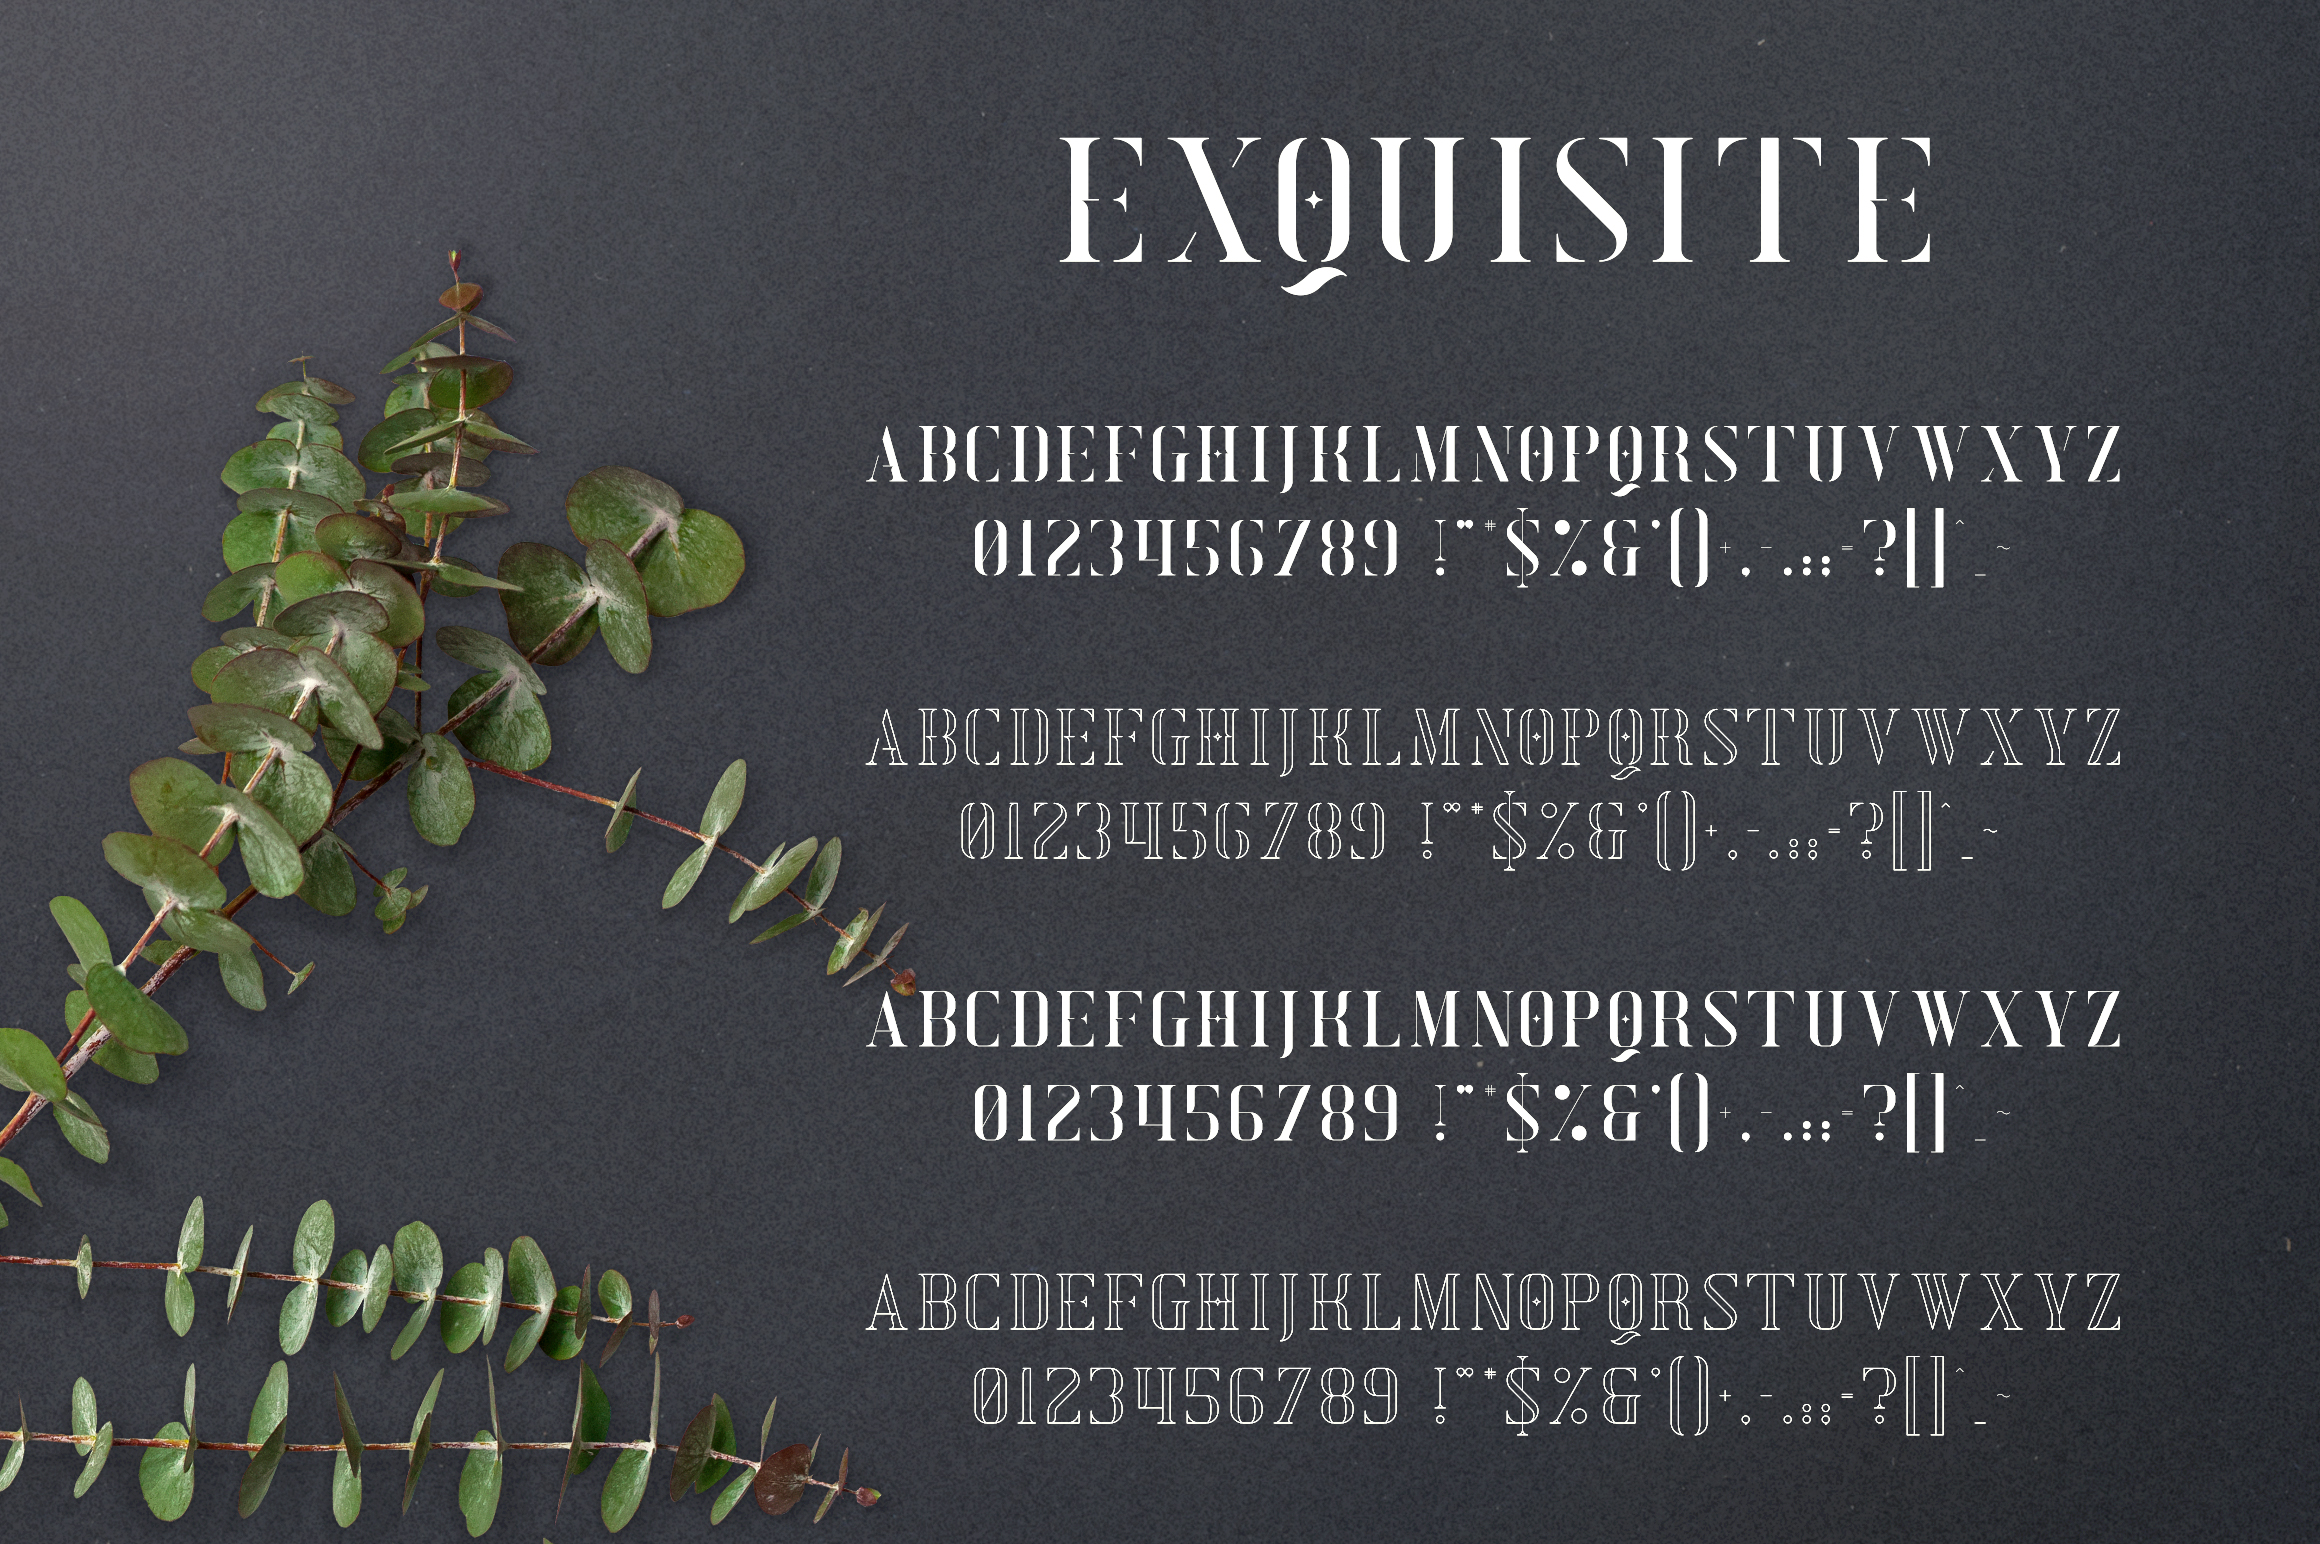 Exquisite - Serif Typeface|4 Styles example image 10